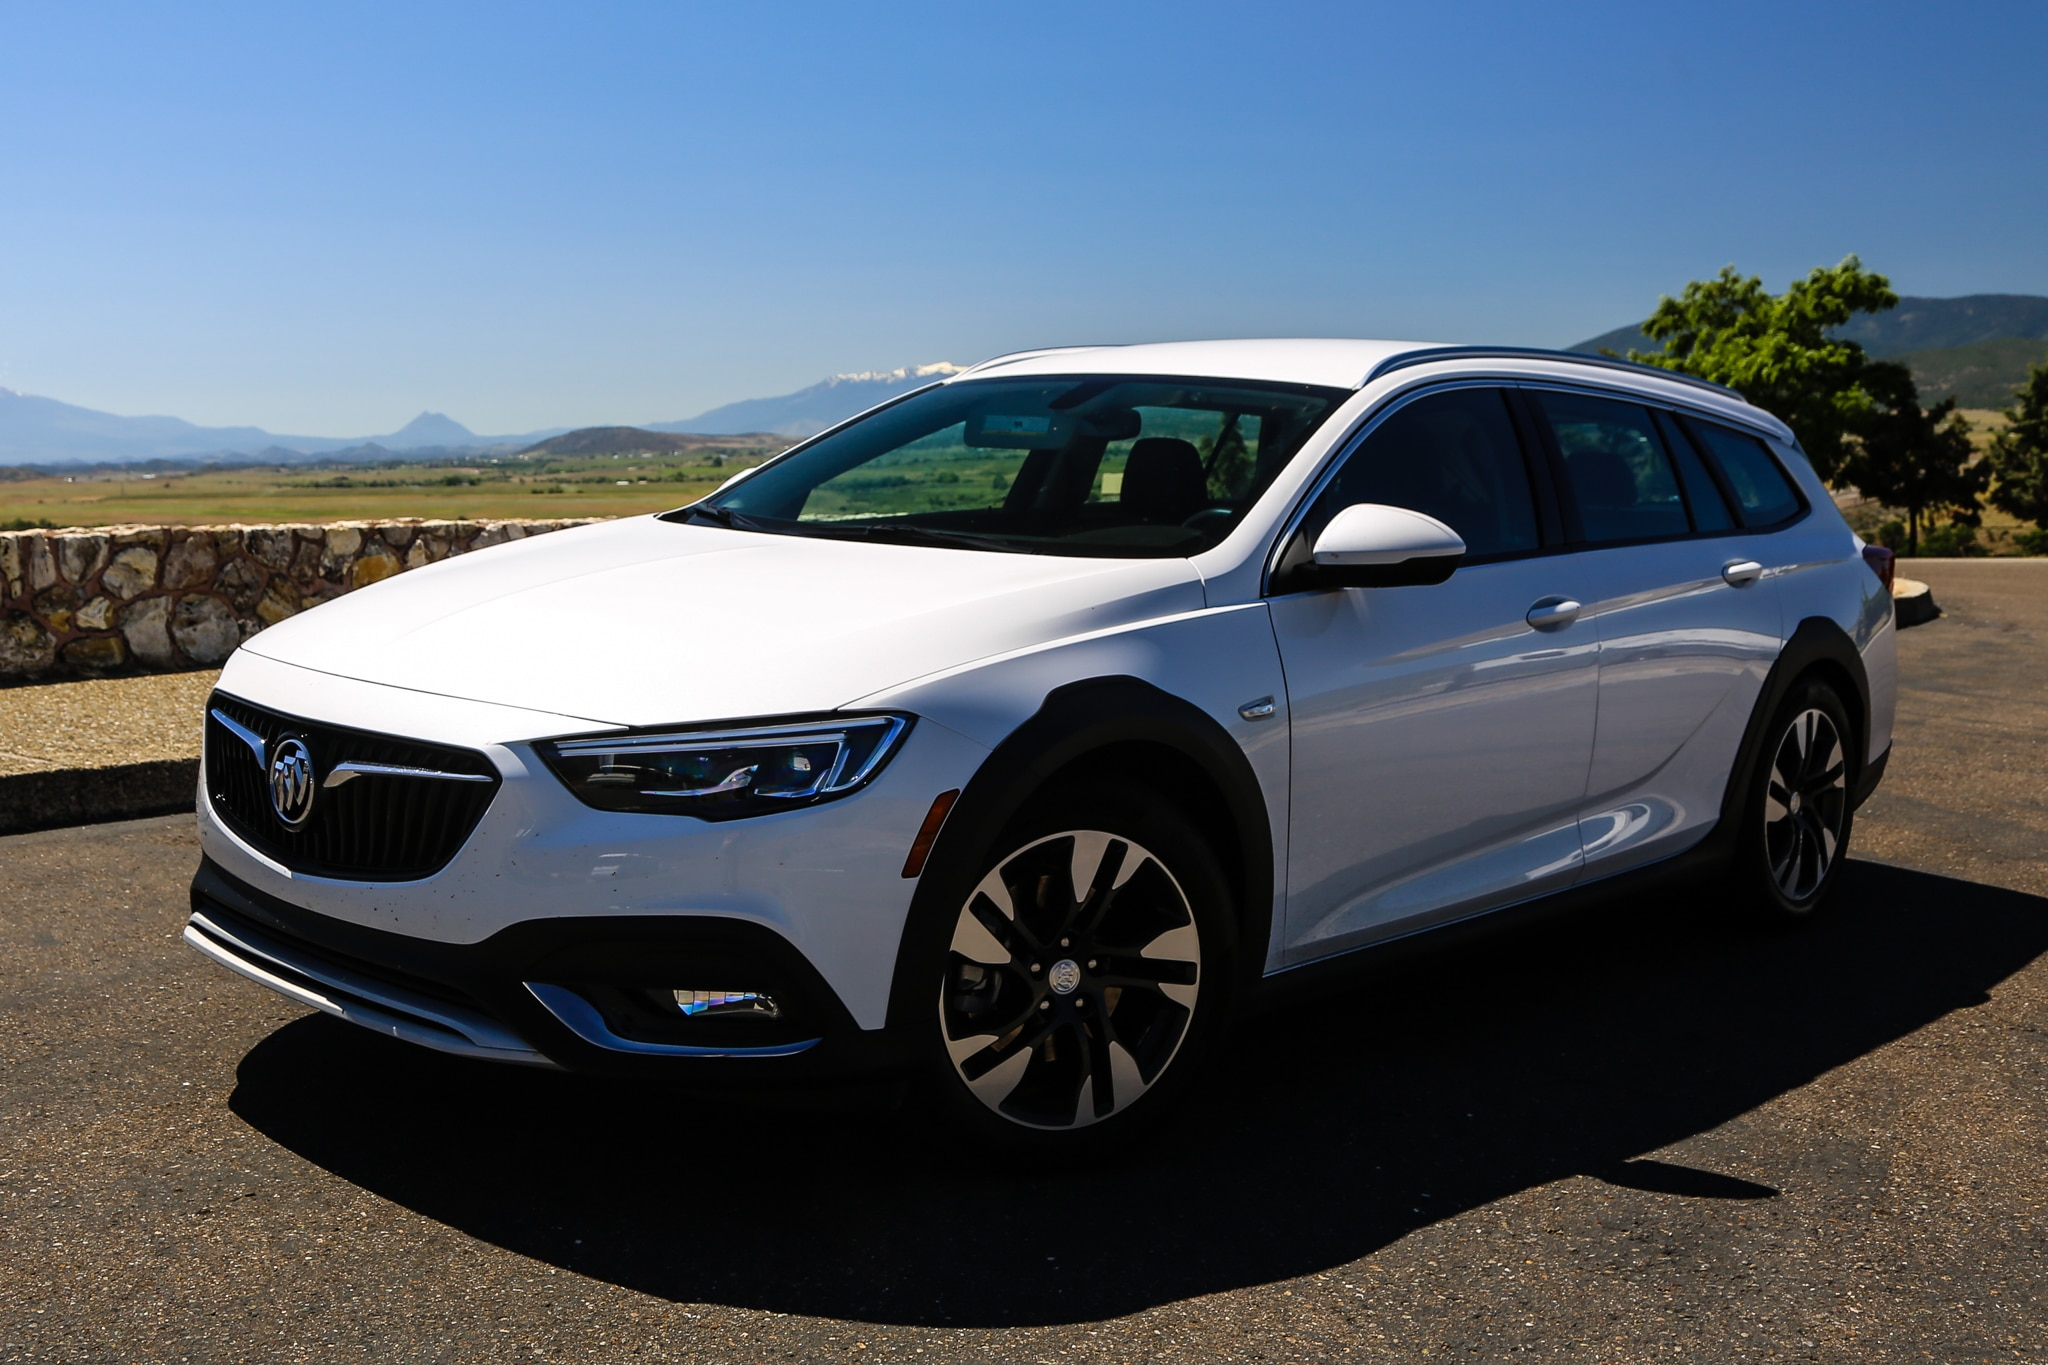 Glasregal 40 X 20 2018 Buick Regal Tourx Essence Awd Quick Take Review Automobile